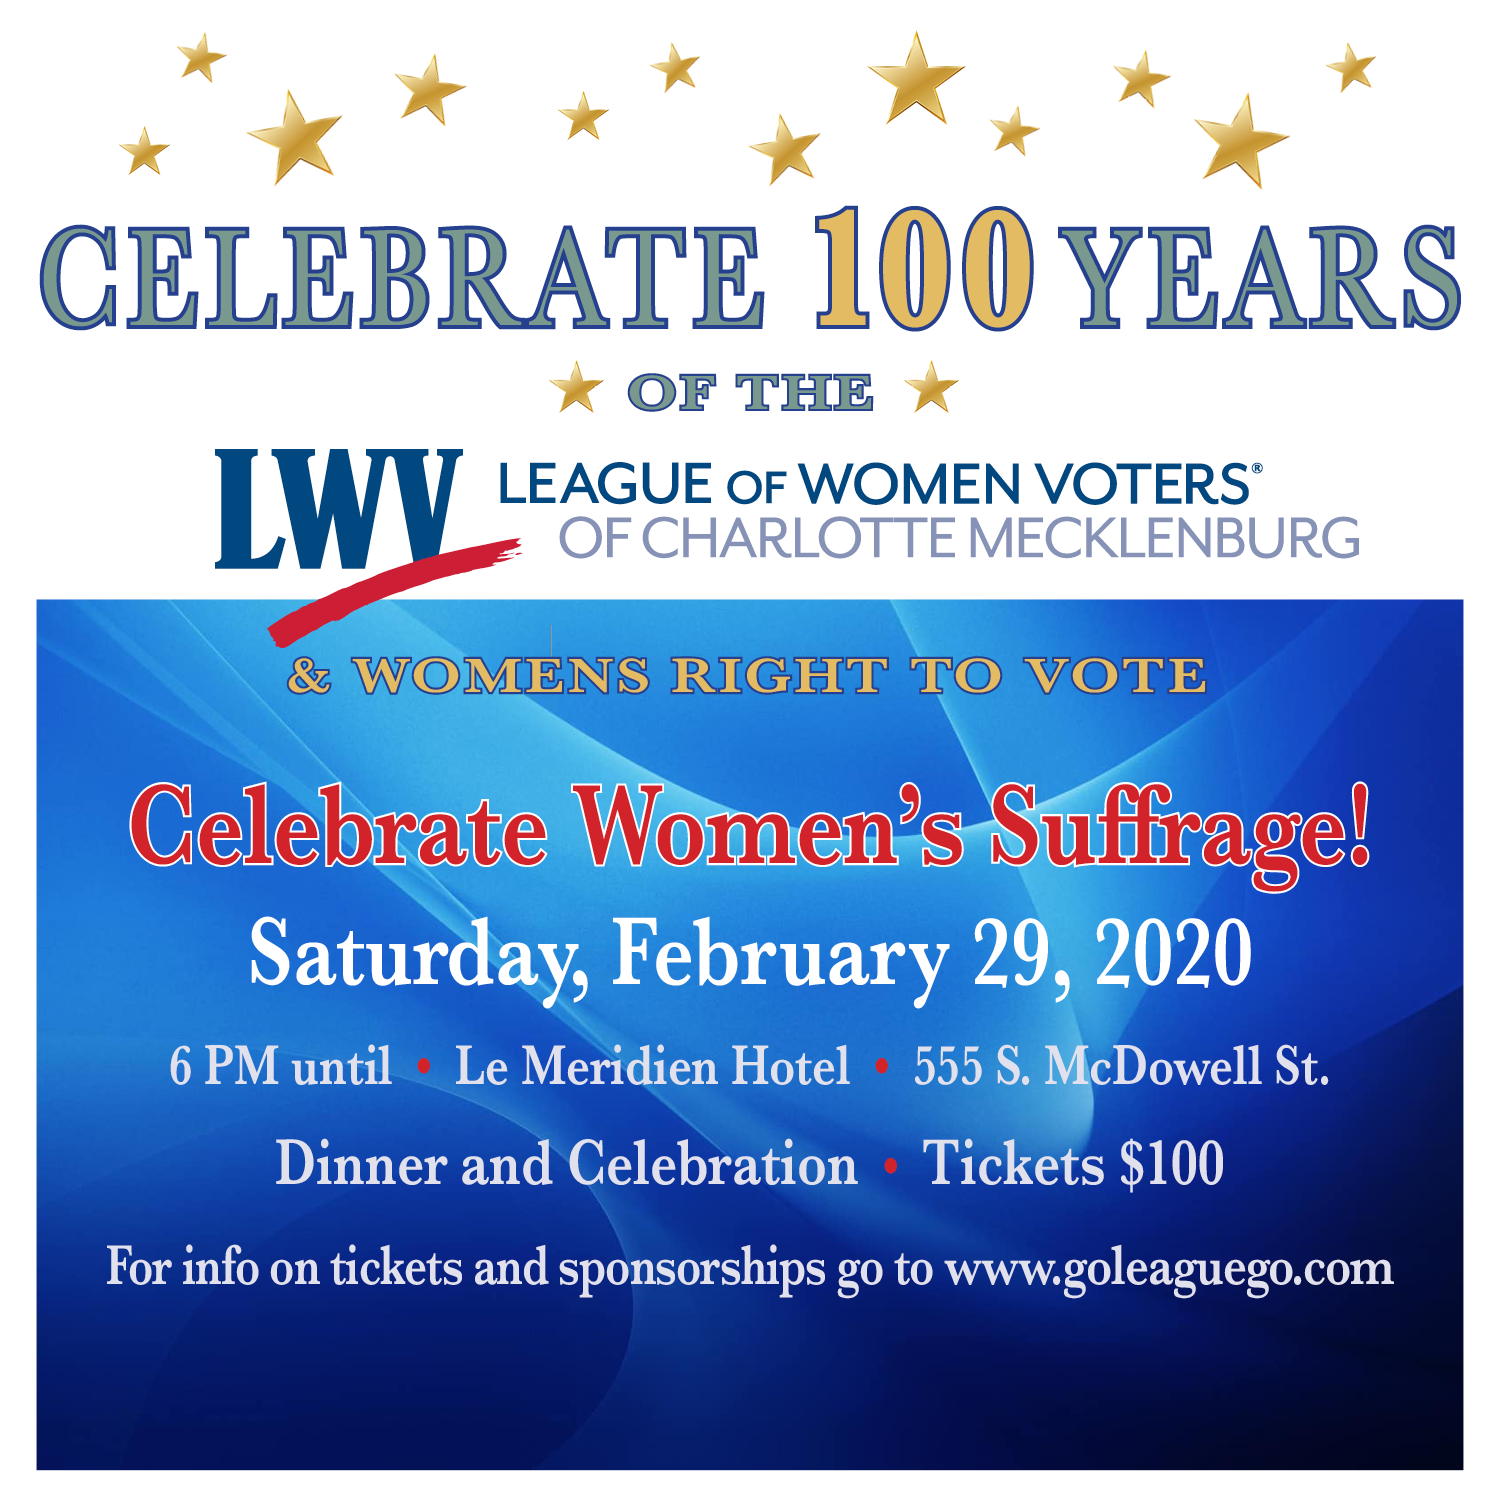 Celebrating 100 Years of the League and Women's Right to Vote